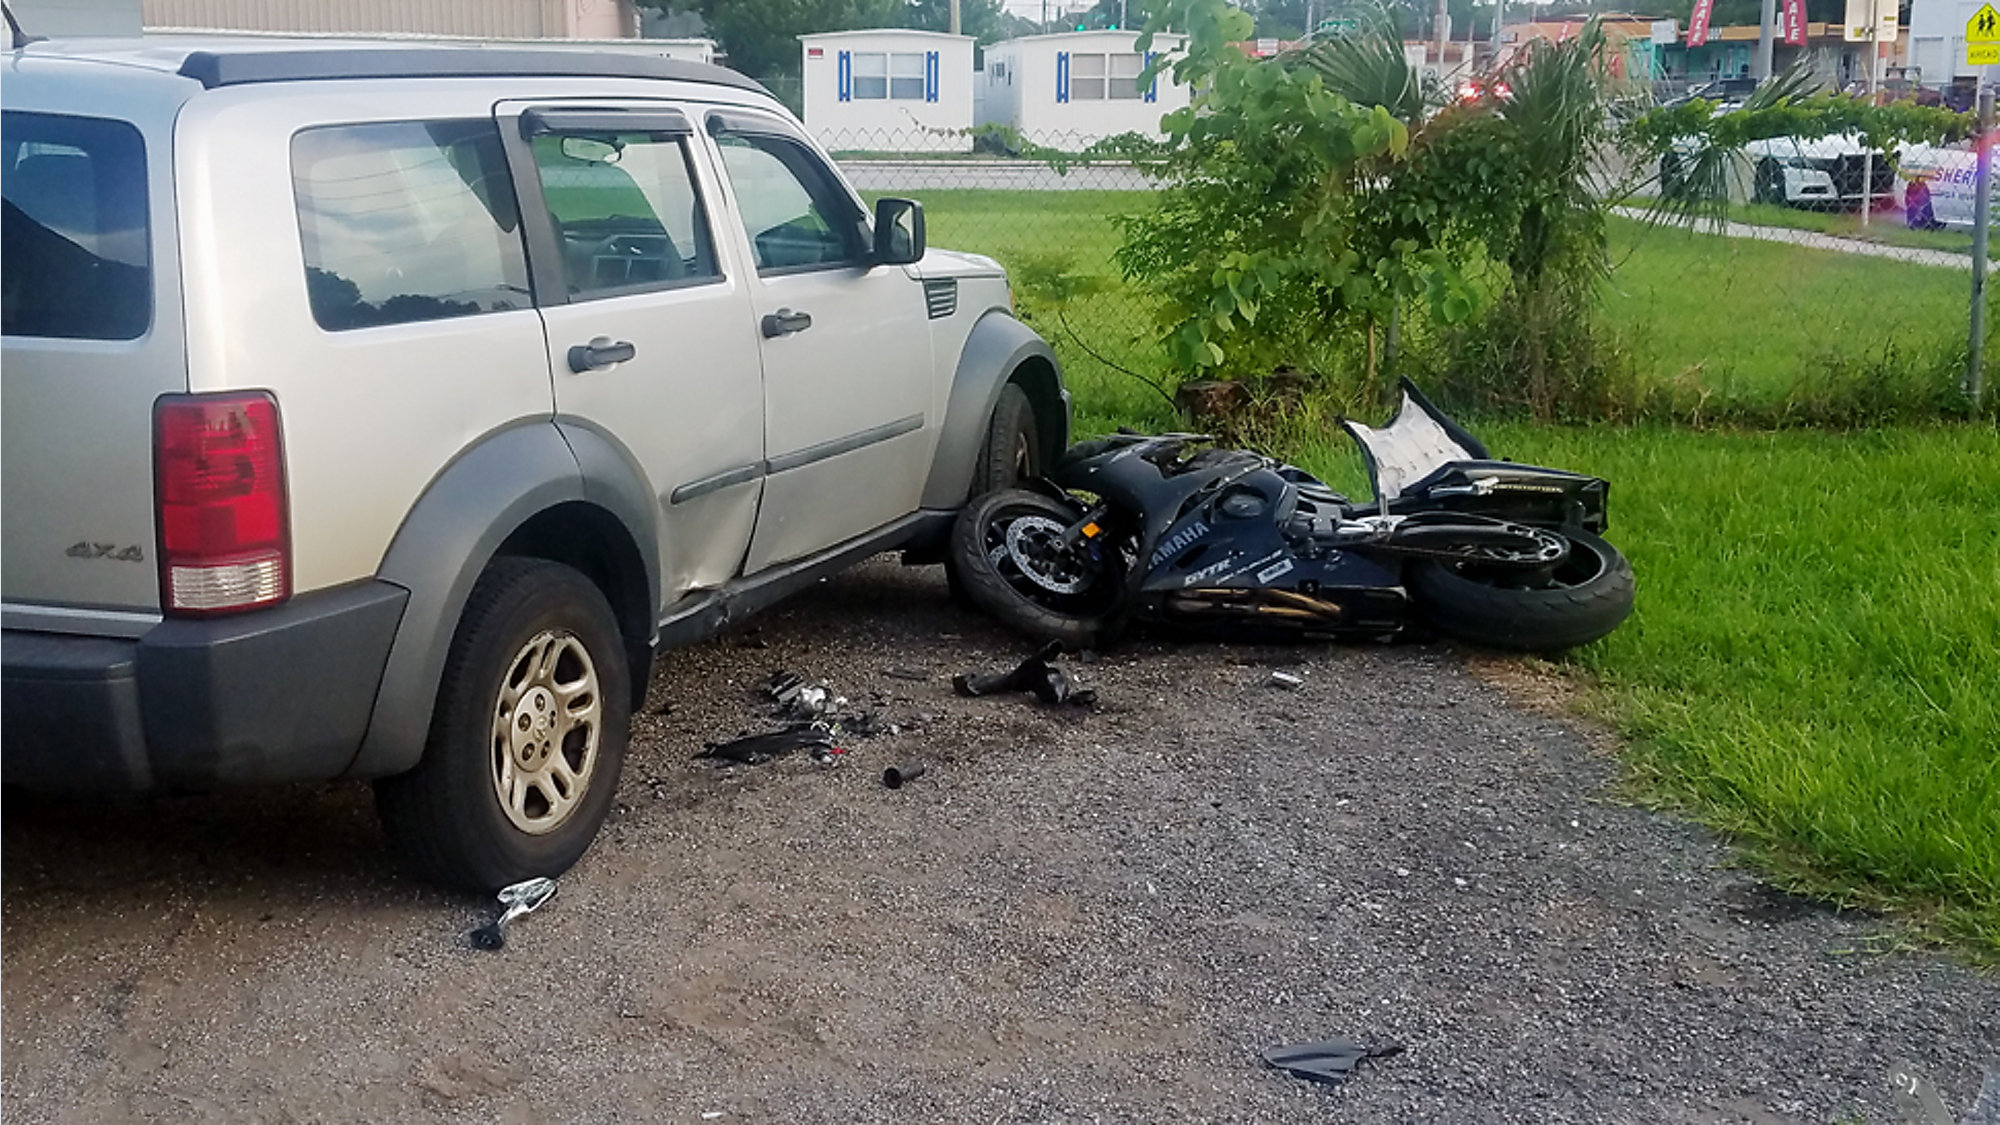 Speeding to Blame For Fatal Motorcycle Crash in Lakeland